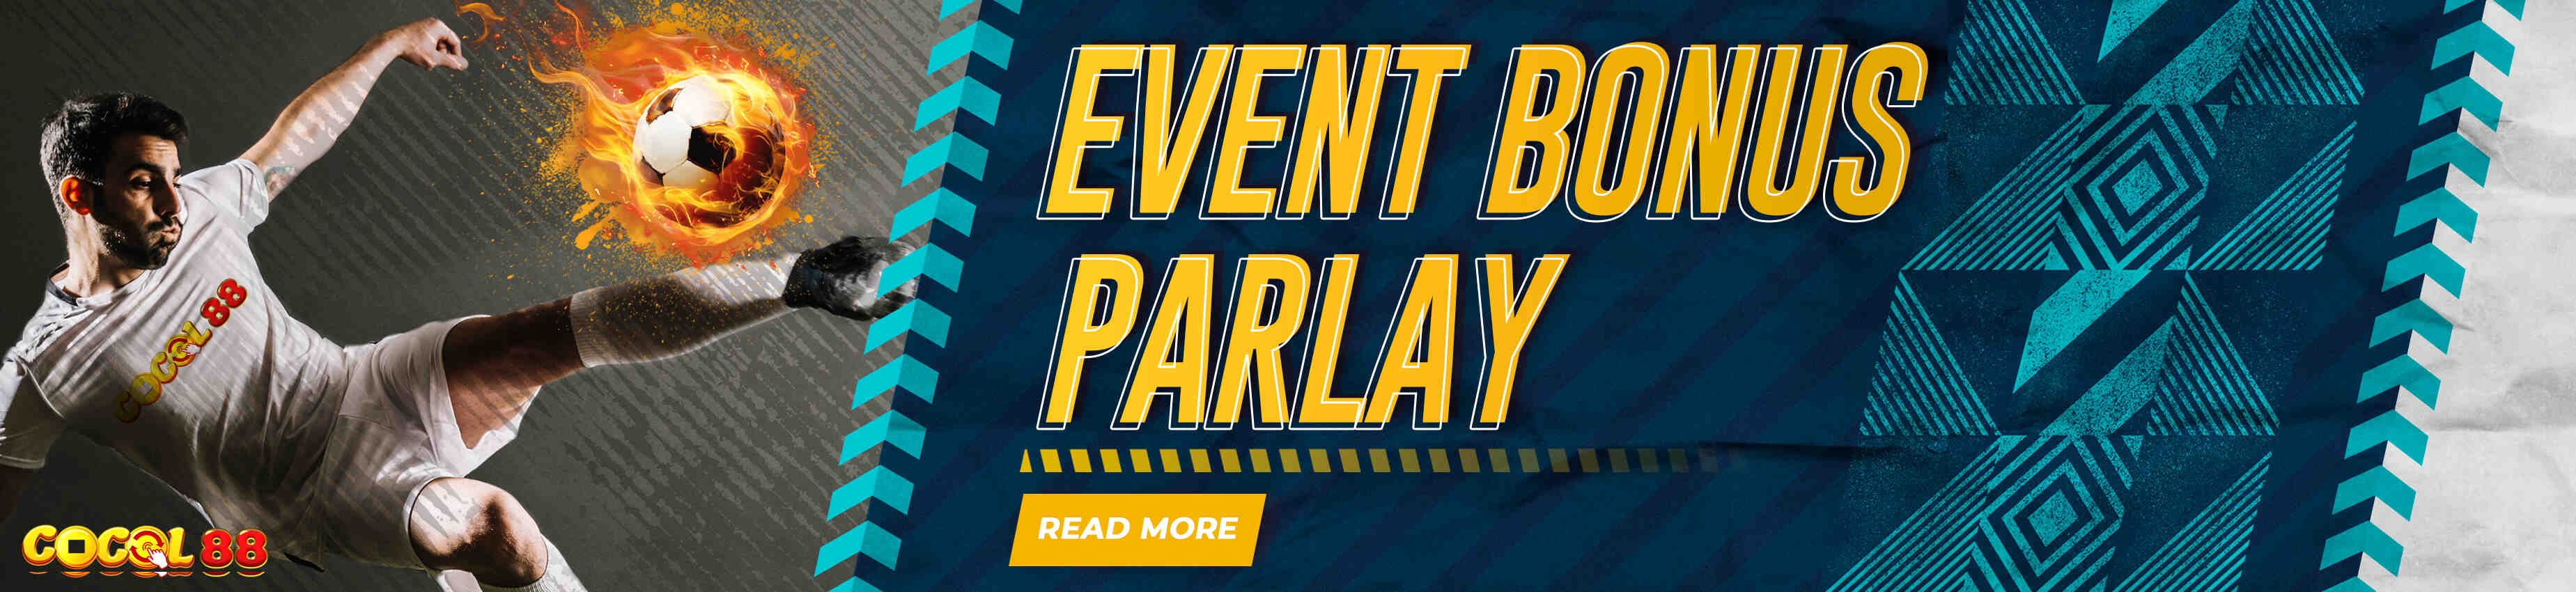 EVENT PARLAY COCOL88